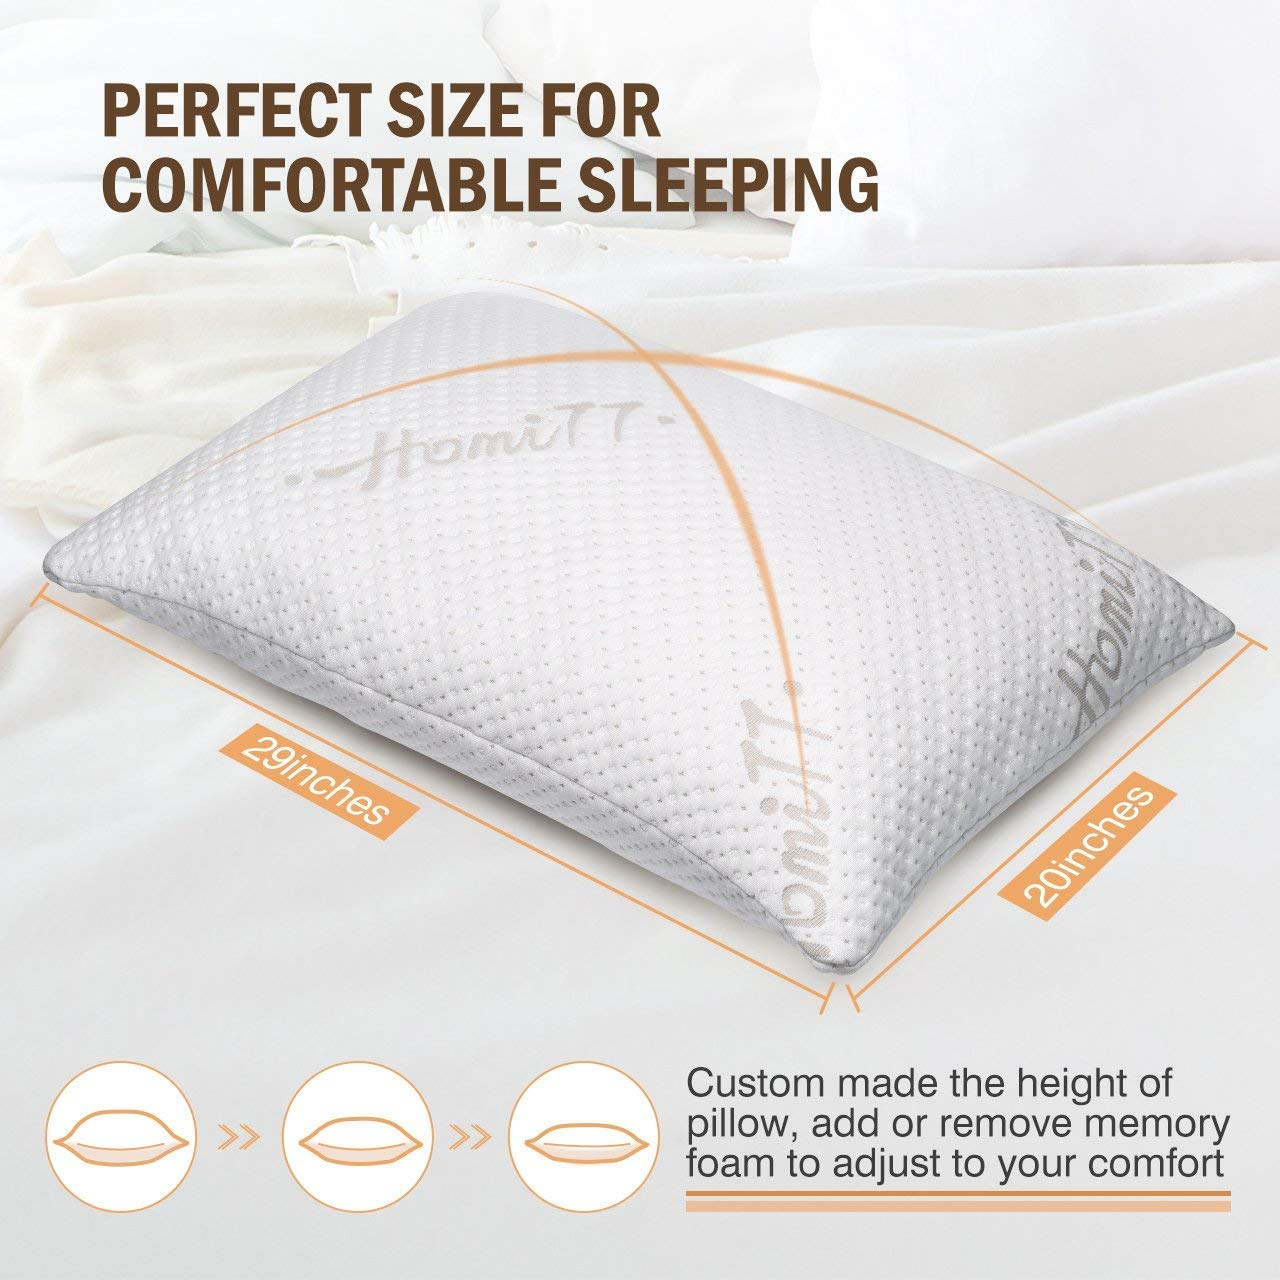 Homitt Shredded Memory Foam Pillow for Sleeping